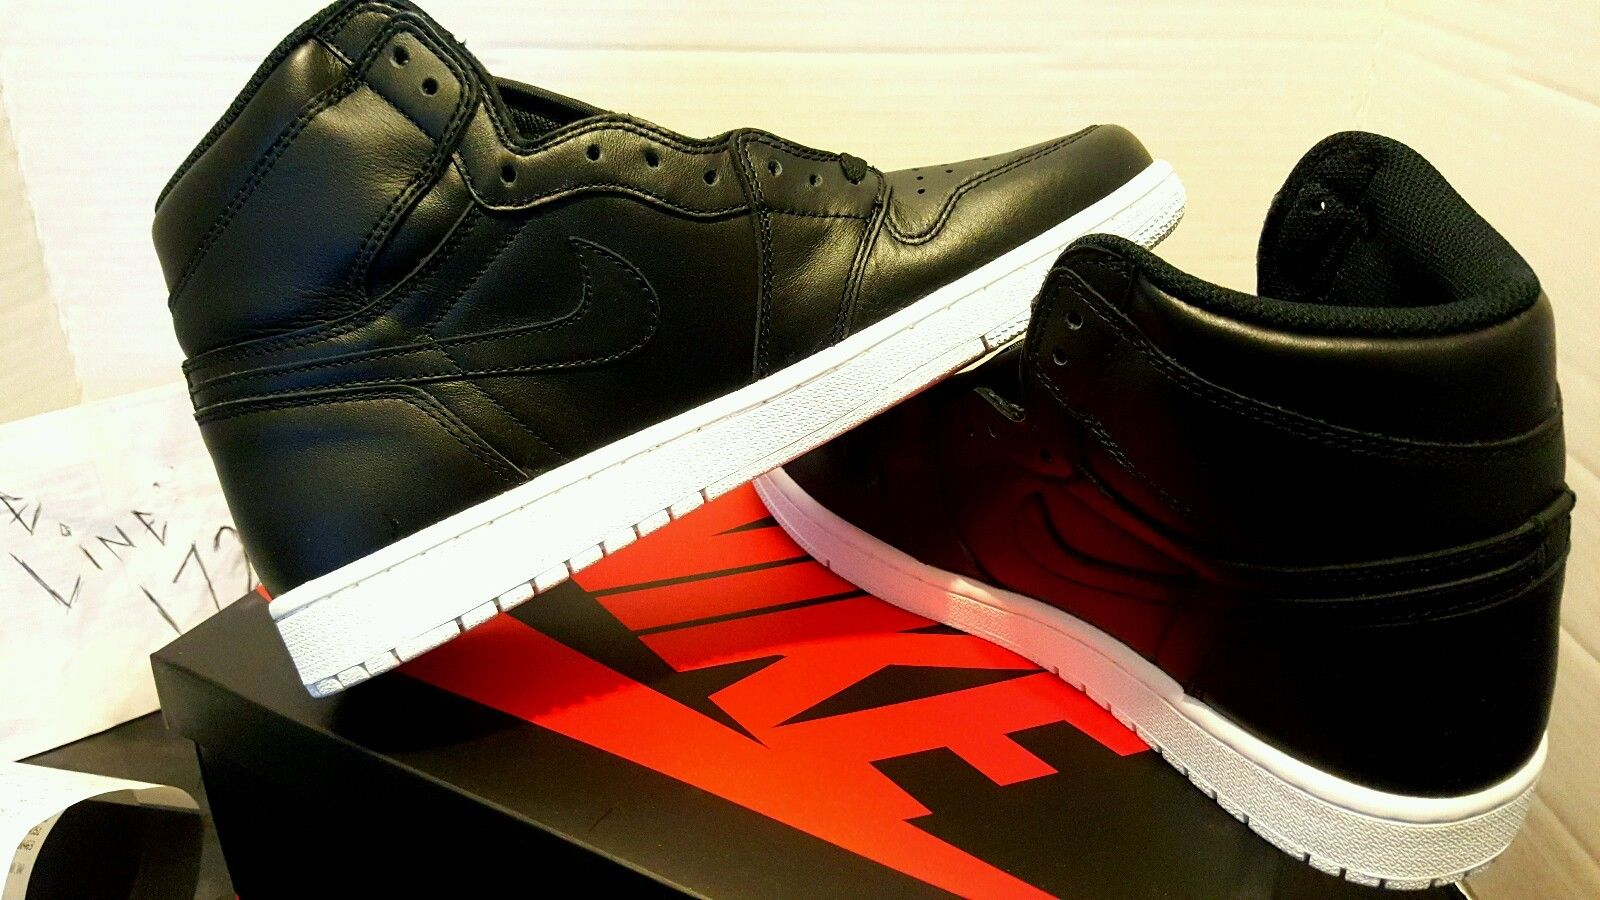 e759ef4c638c57 air jordan 1 retro high og Archives - Air 23 - Air Jordan Release ...